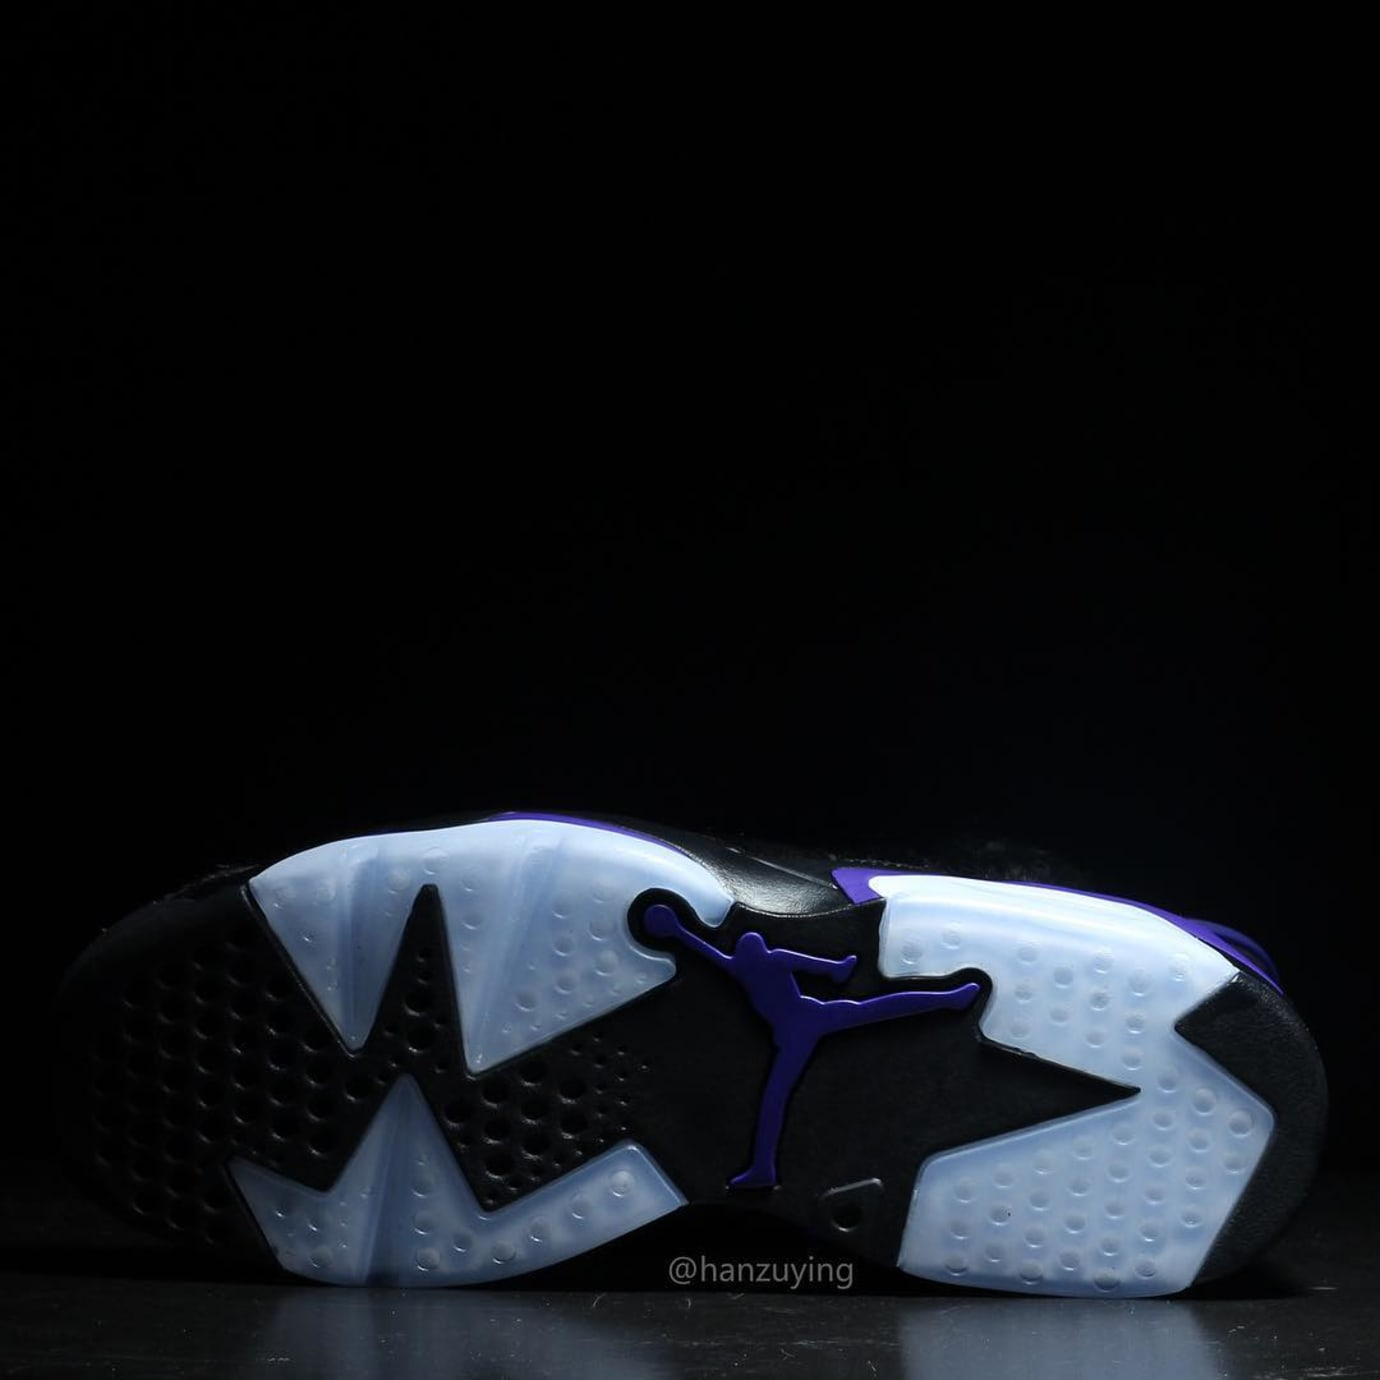 8486a3b83bb Image via hanzuying · Air Jordan 6 VI Cow Fur Snakeskin Black Purple  Release Date AR2257-005 Sole